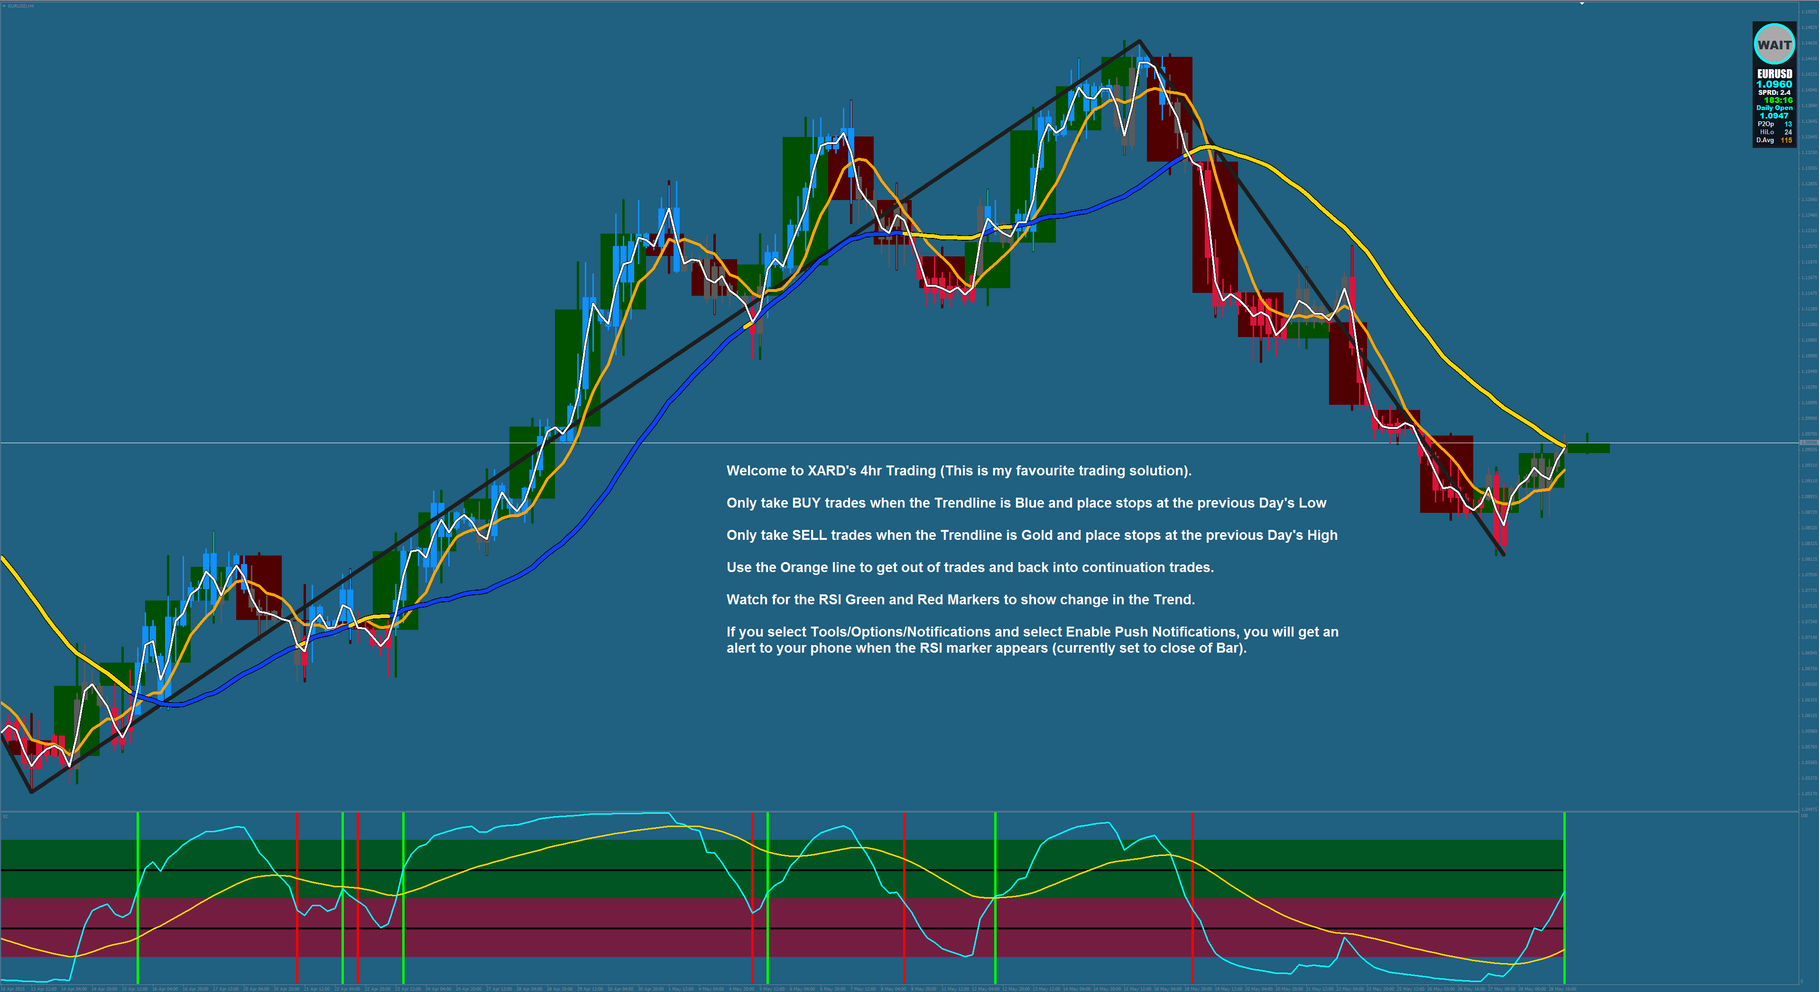 Metatrader 4 trading strategies